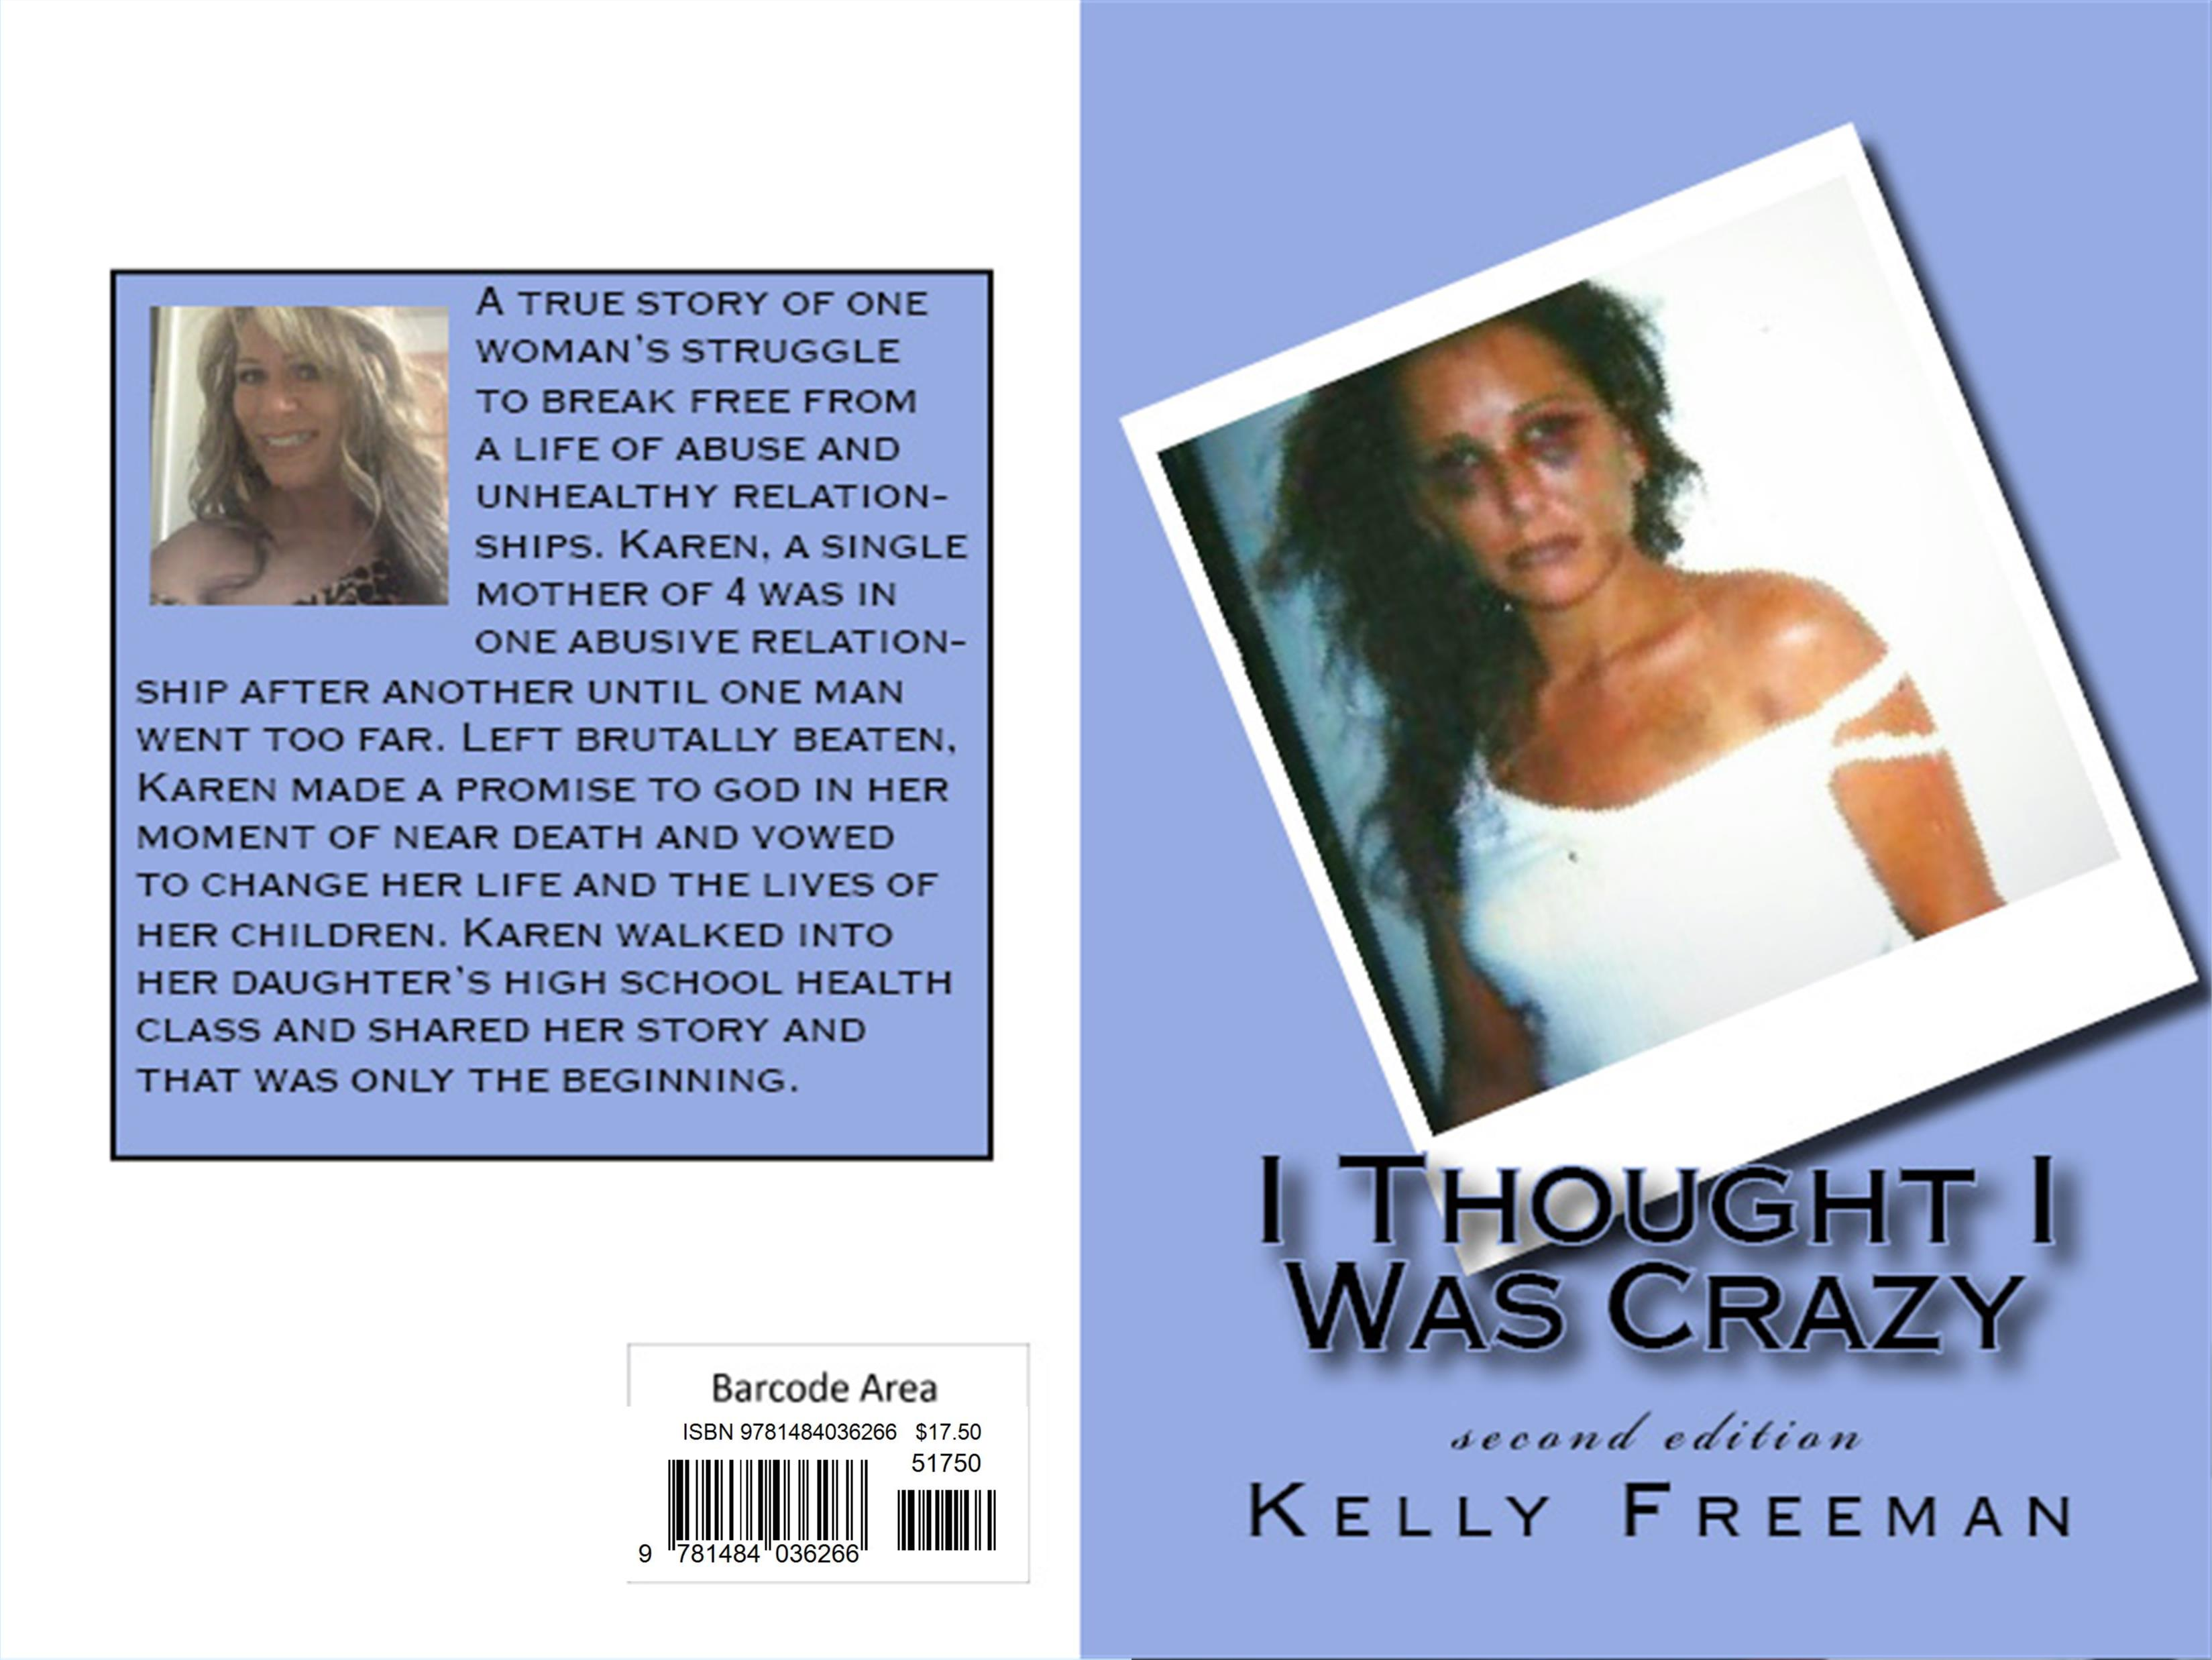 I Thought I Was Crazy cover image